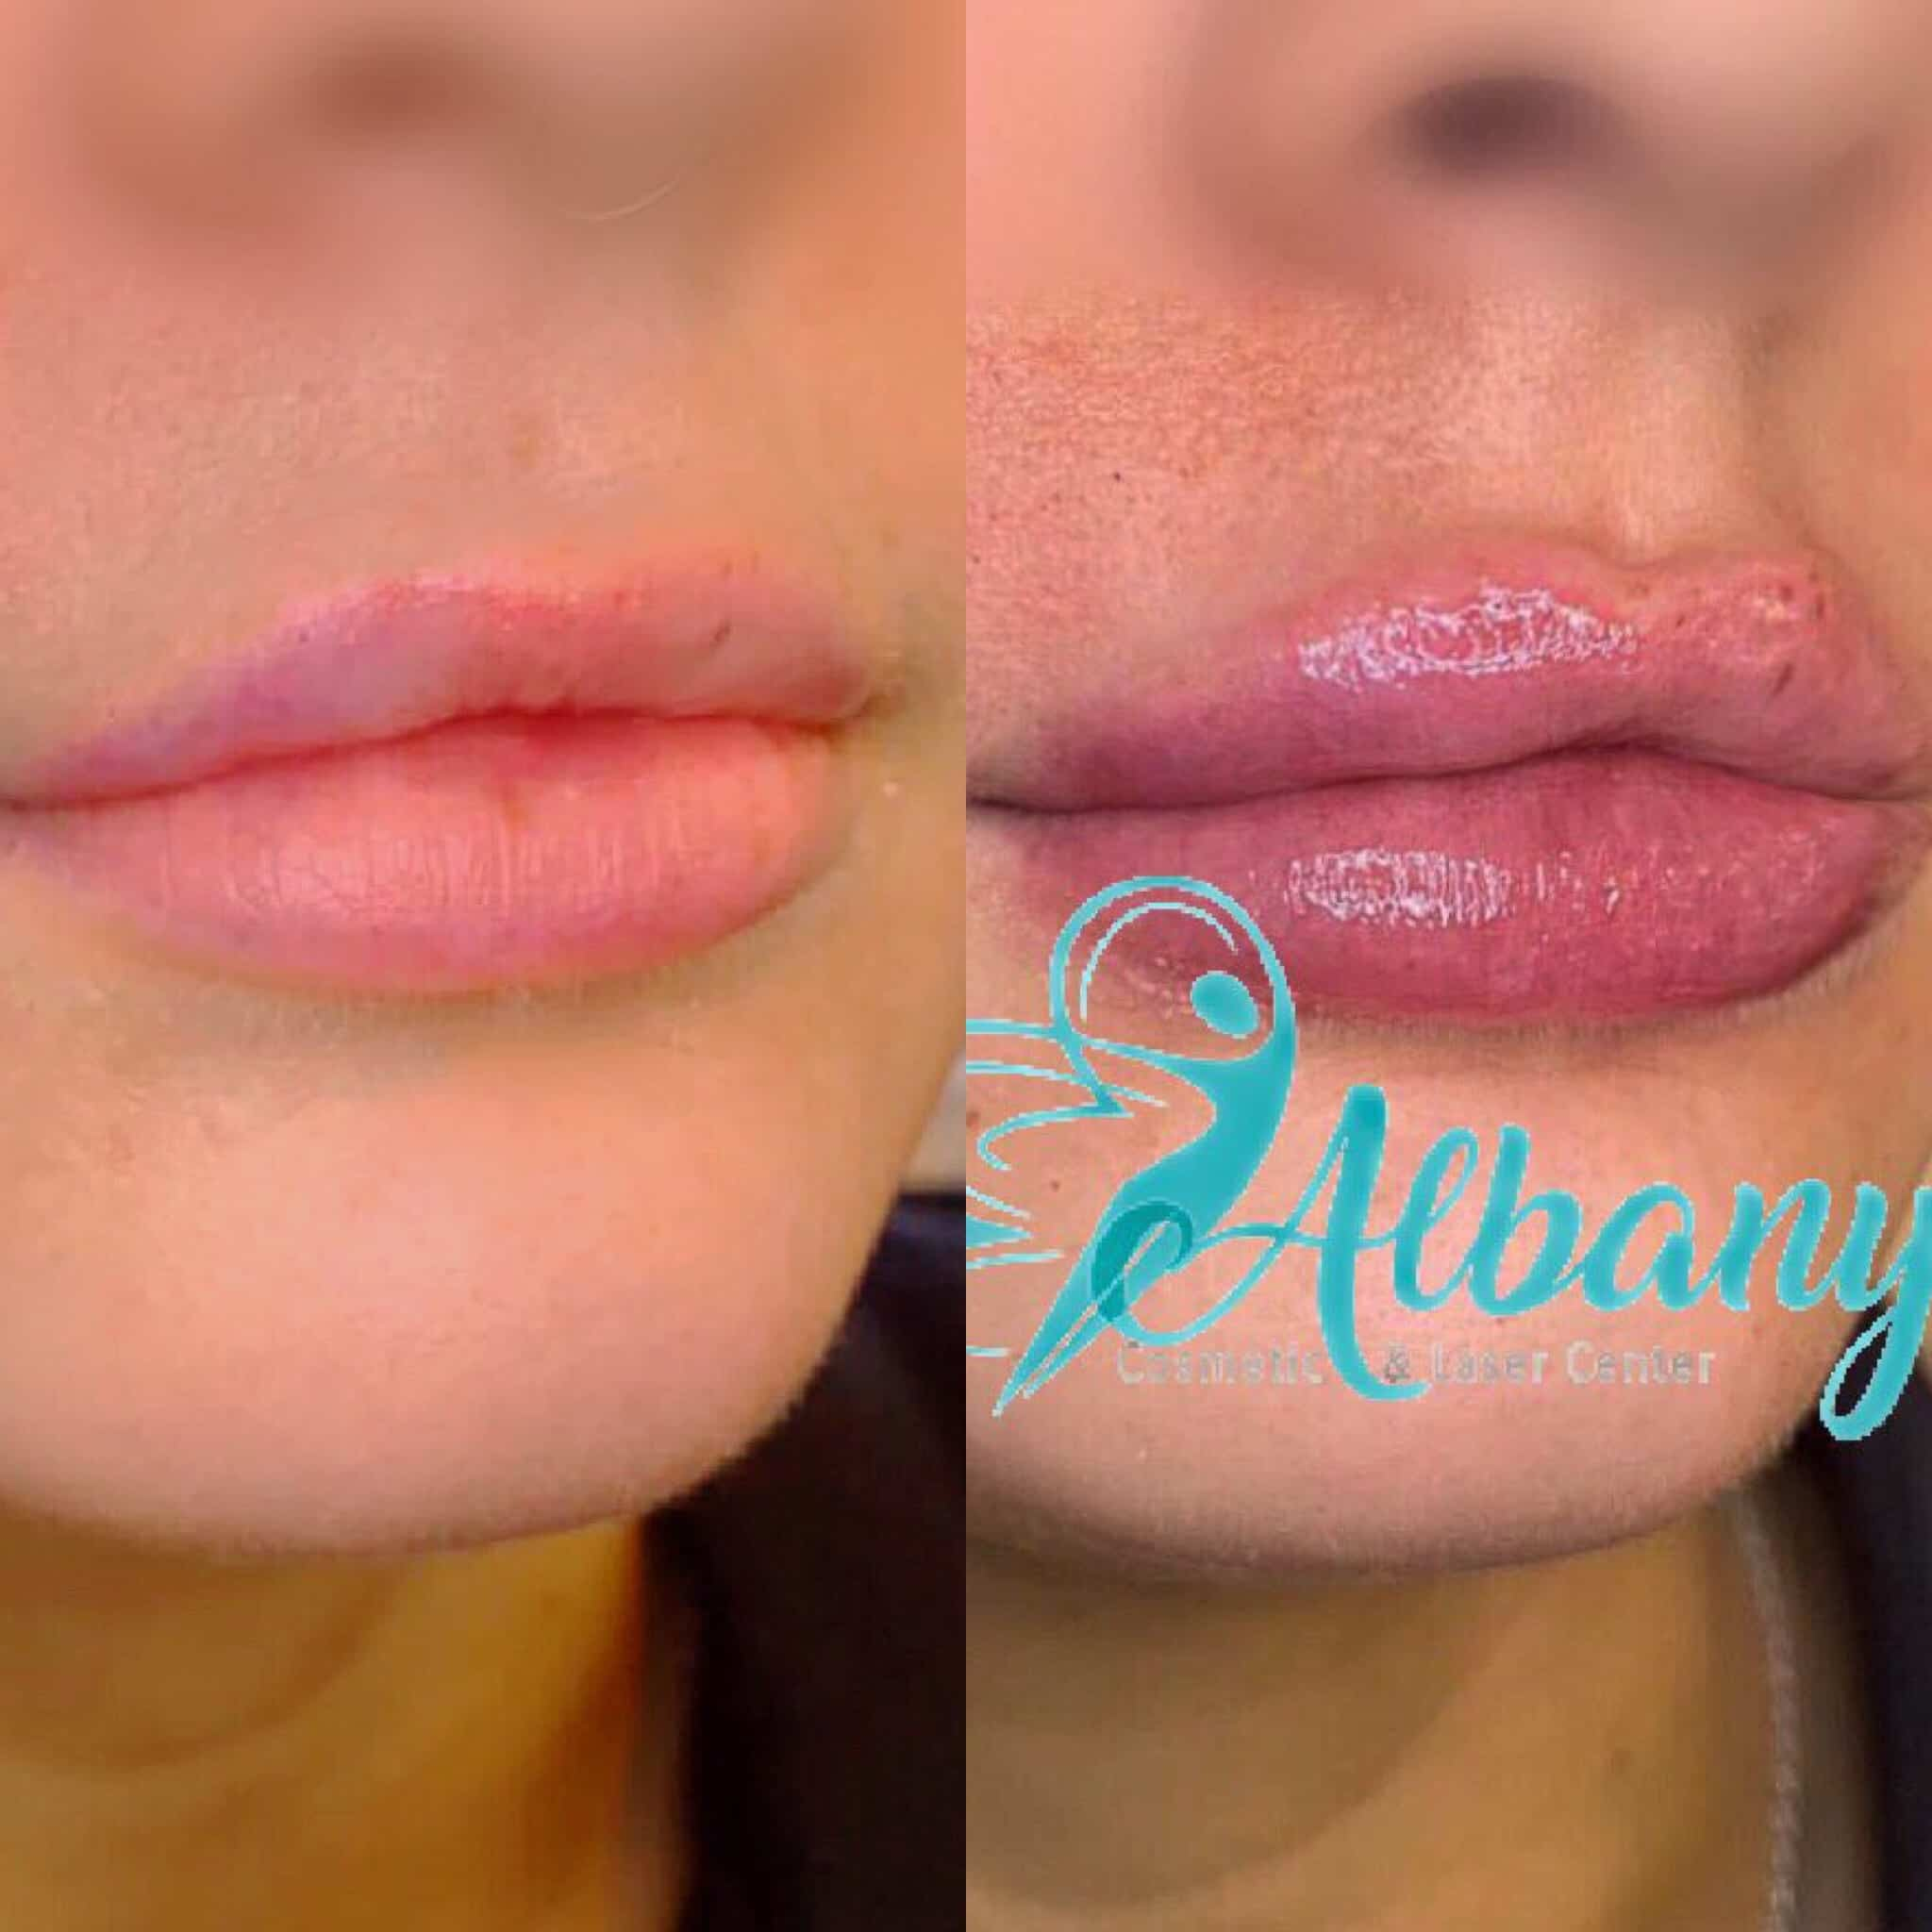 Before and after Juvederm lip fillers in Edmonton